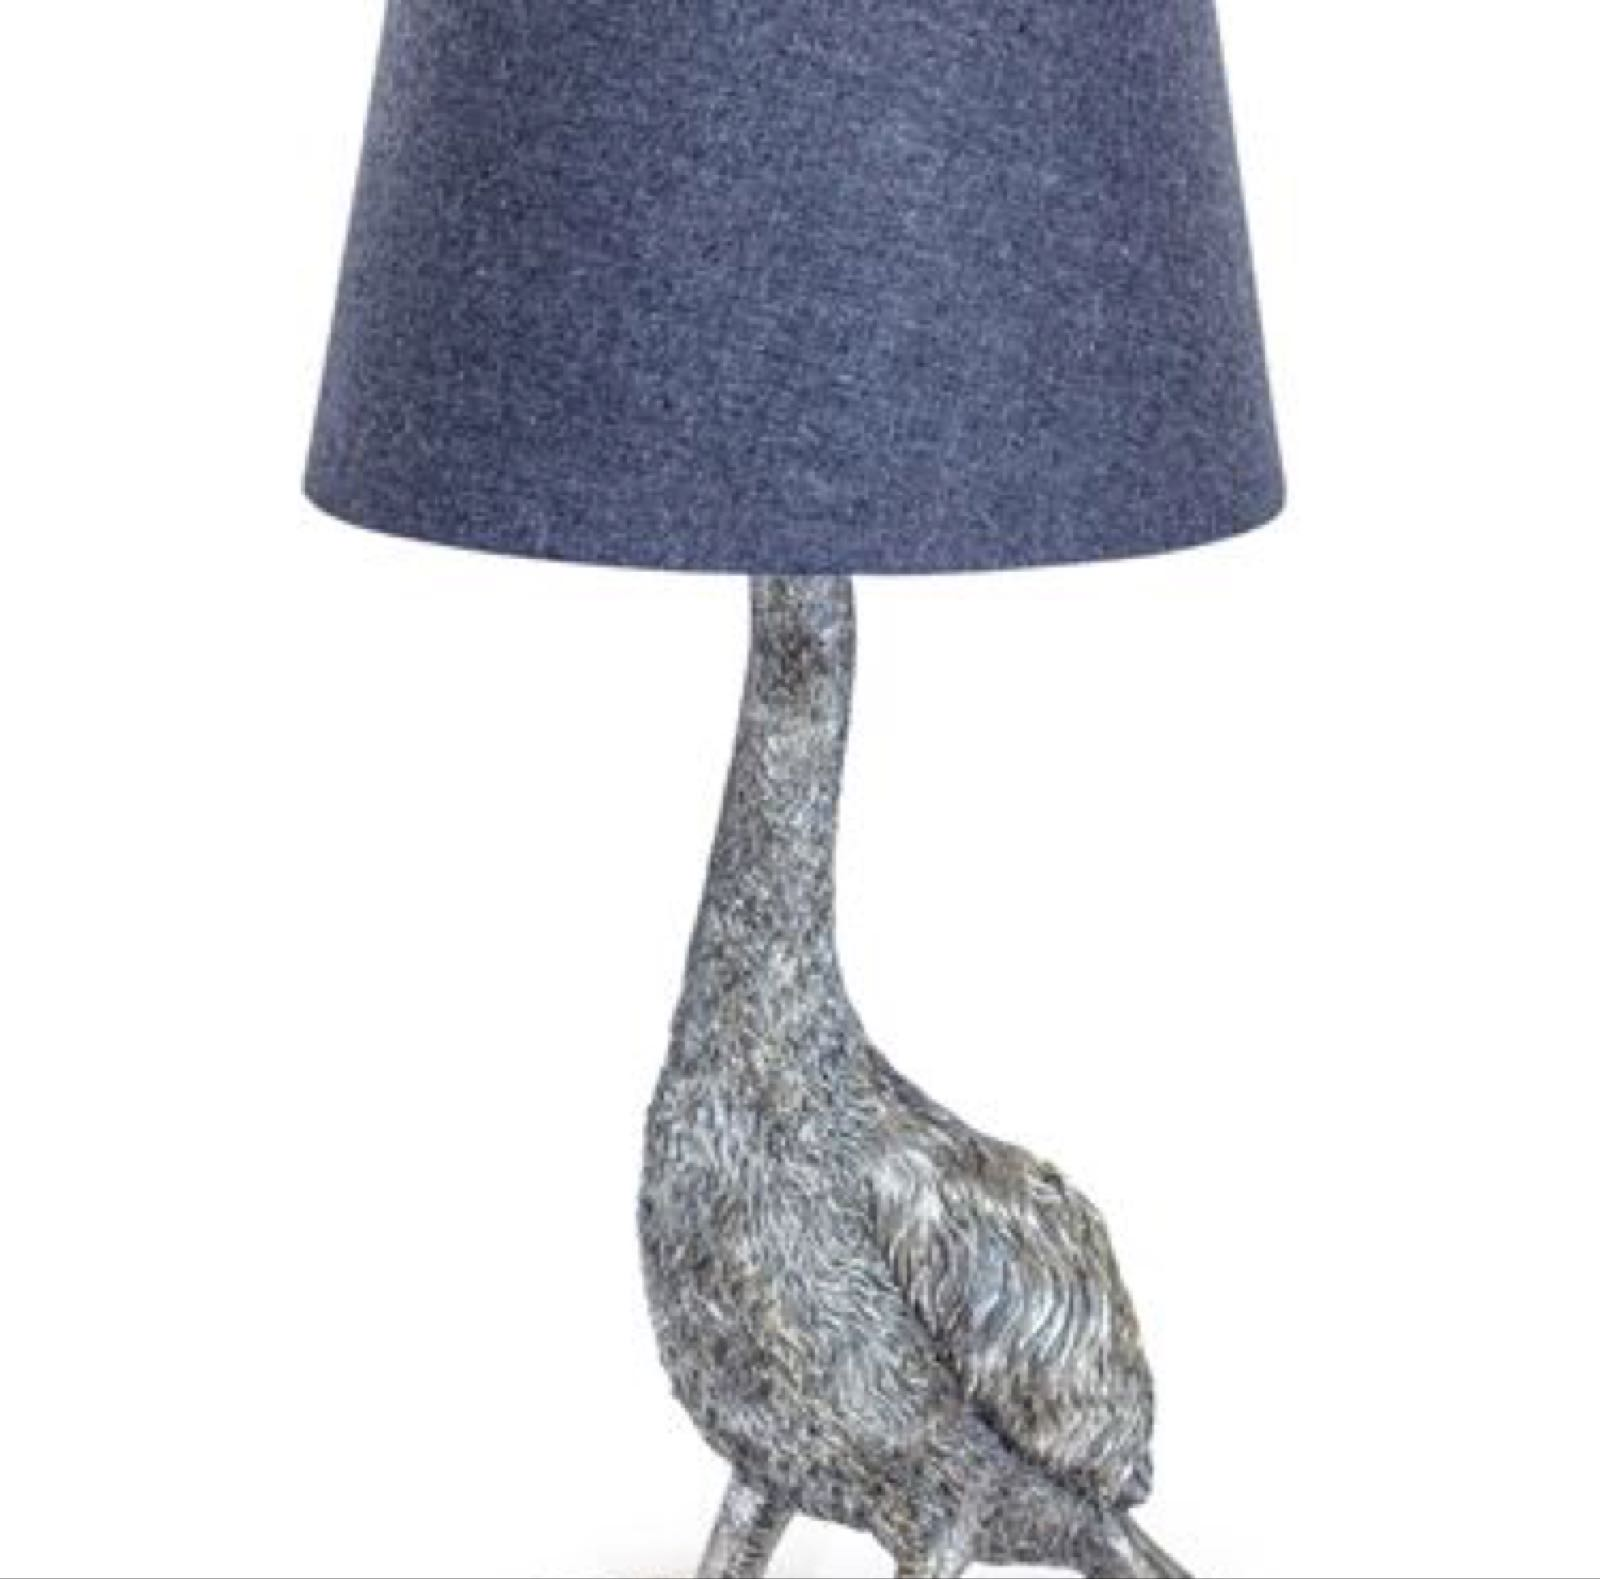 Antique silver Goose lamp with grey lamp shade 30 x 59cm